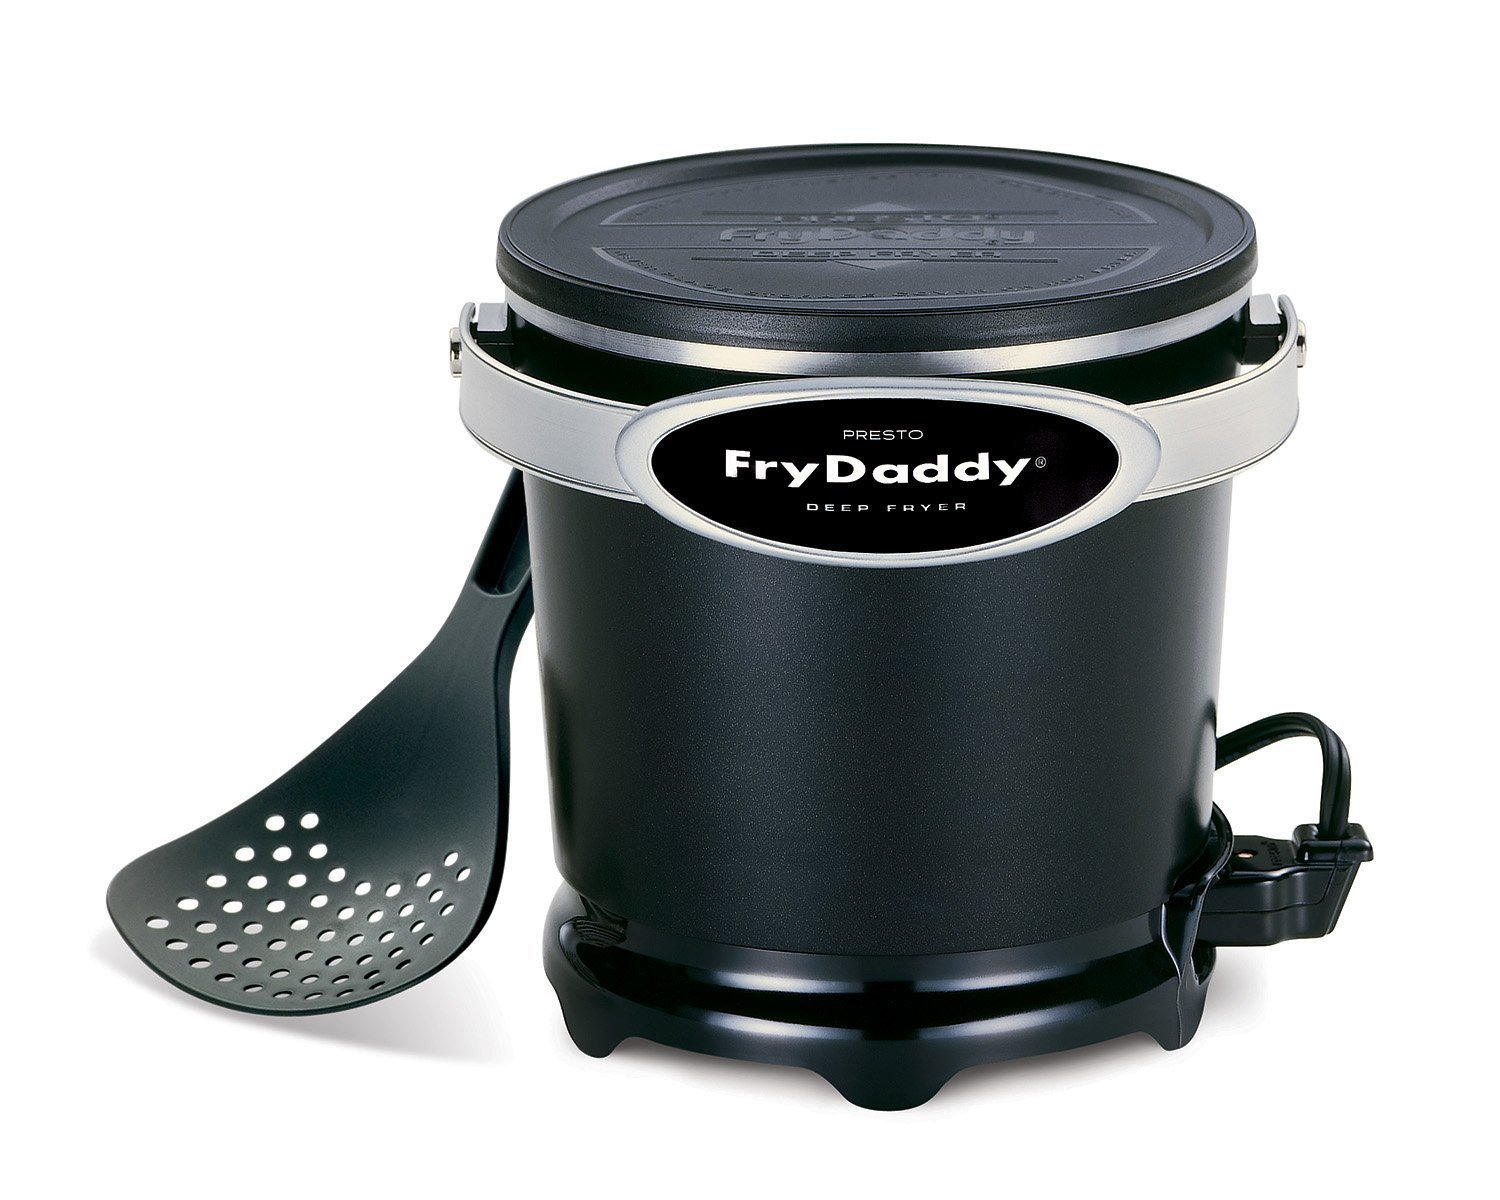 FryDaddy Deep Fryer